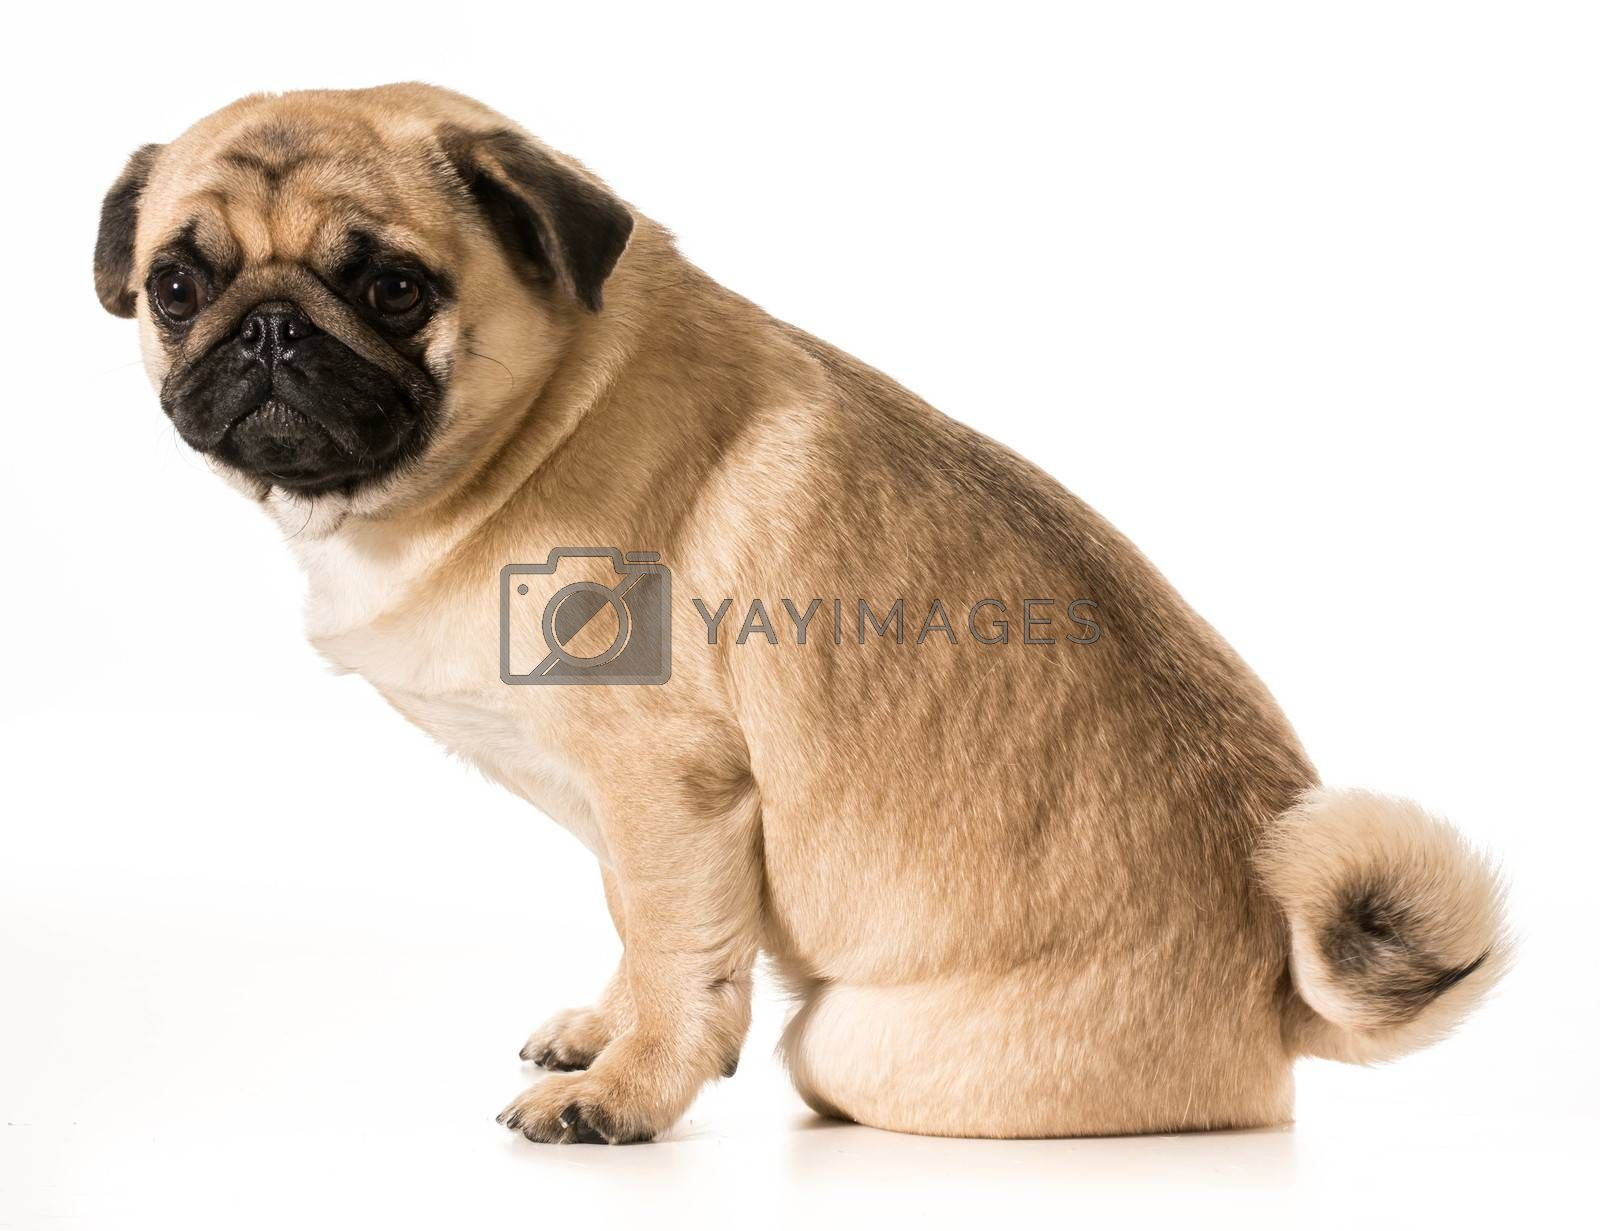 Royalty free image of worried dog by willeecole123